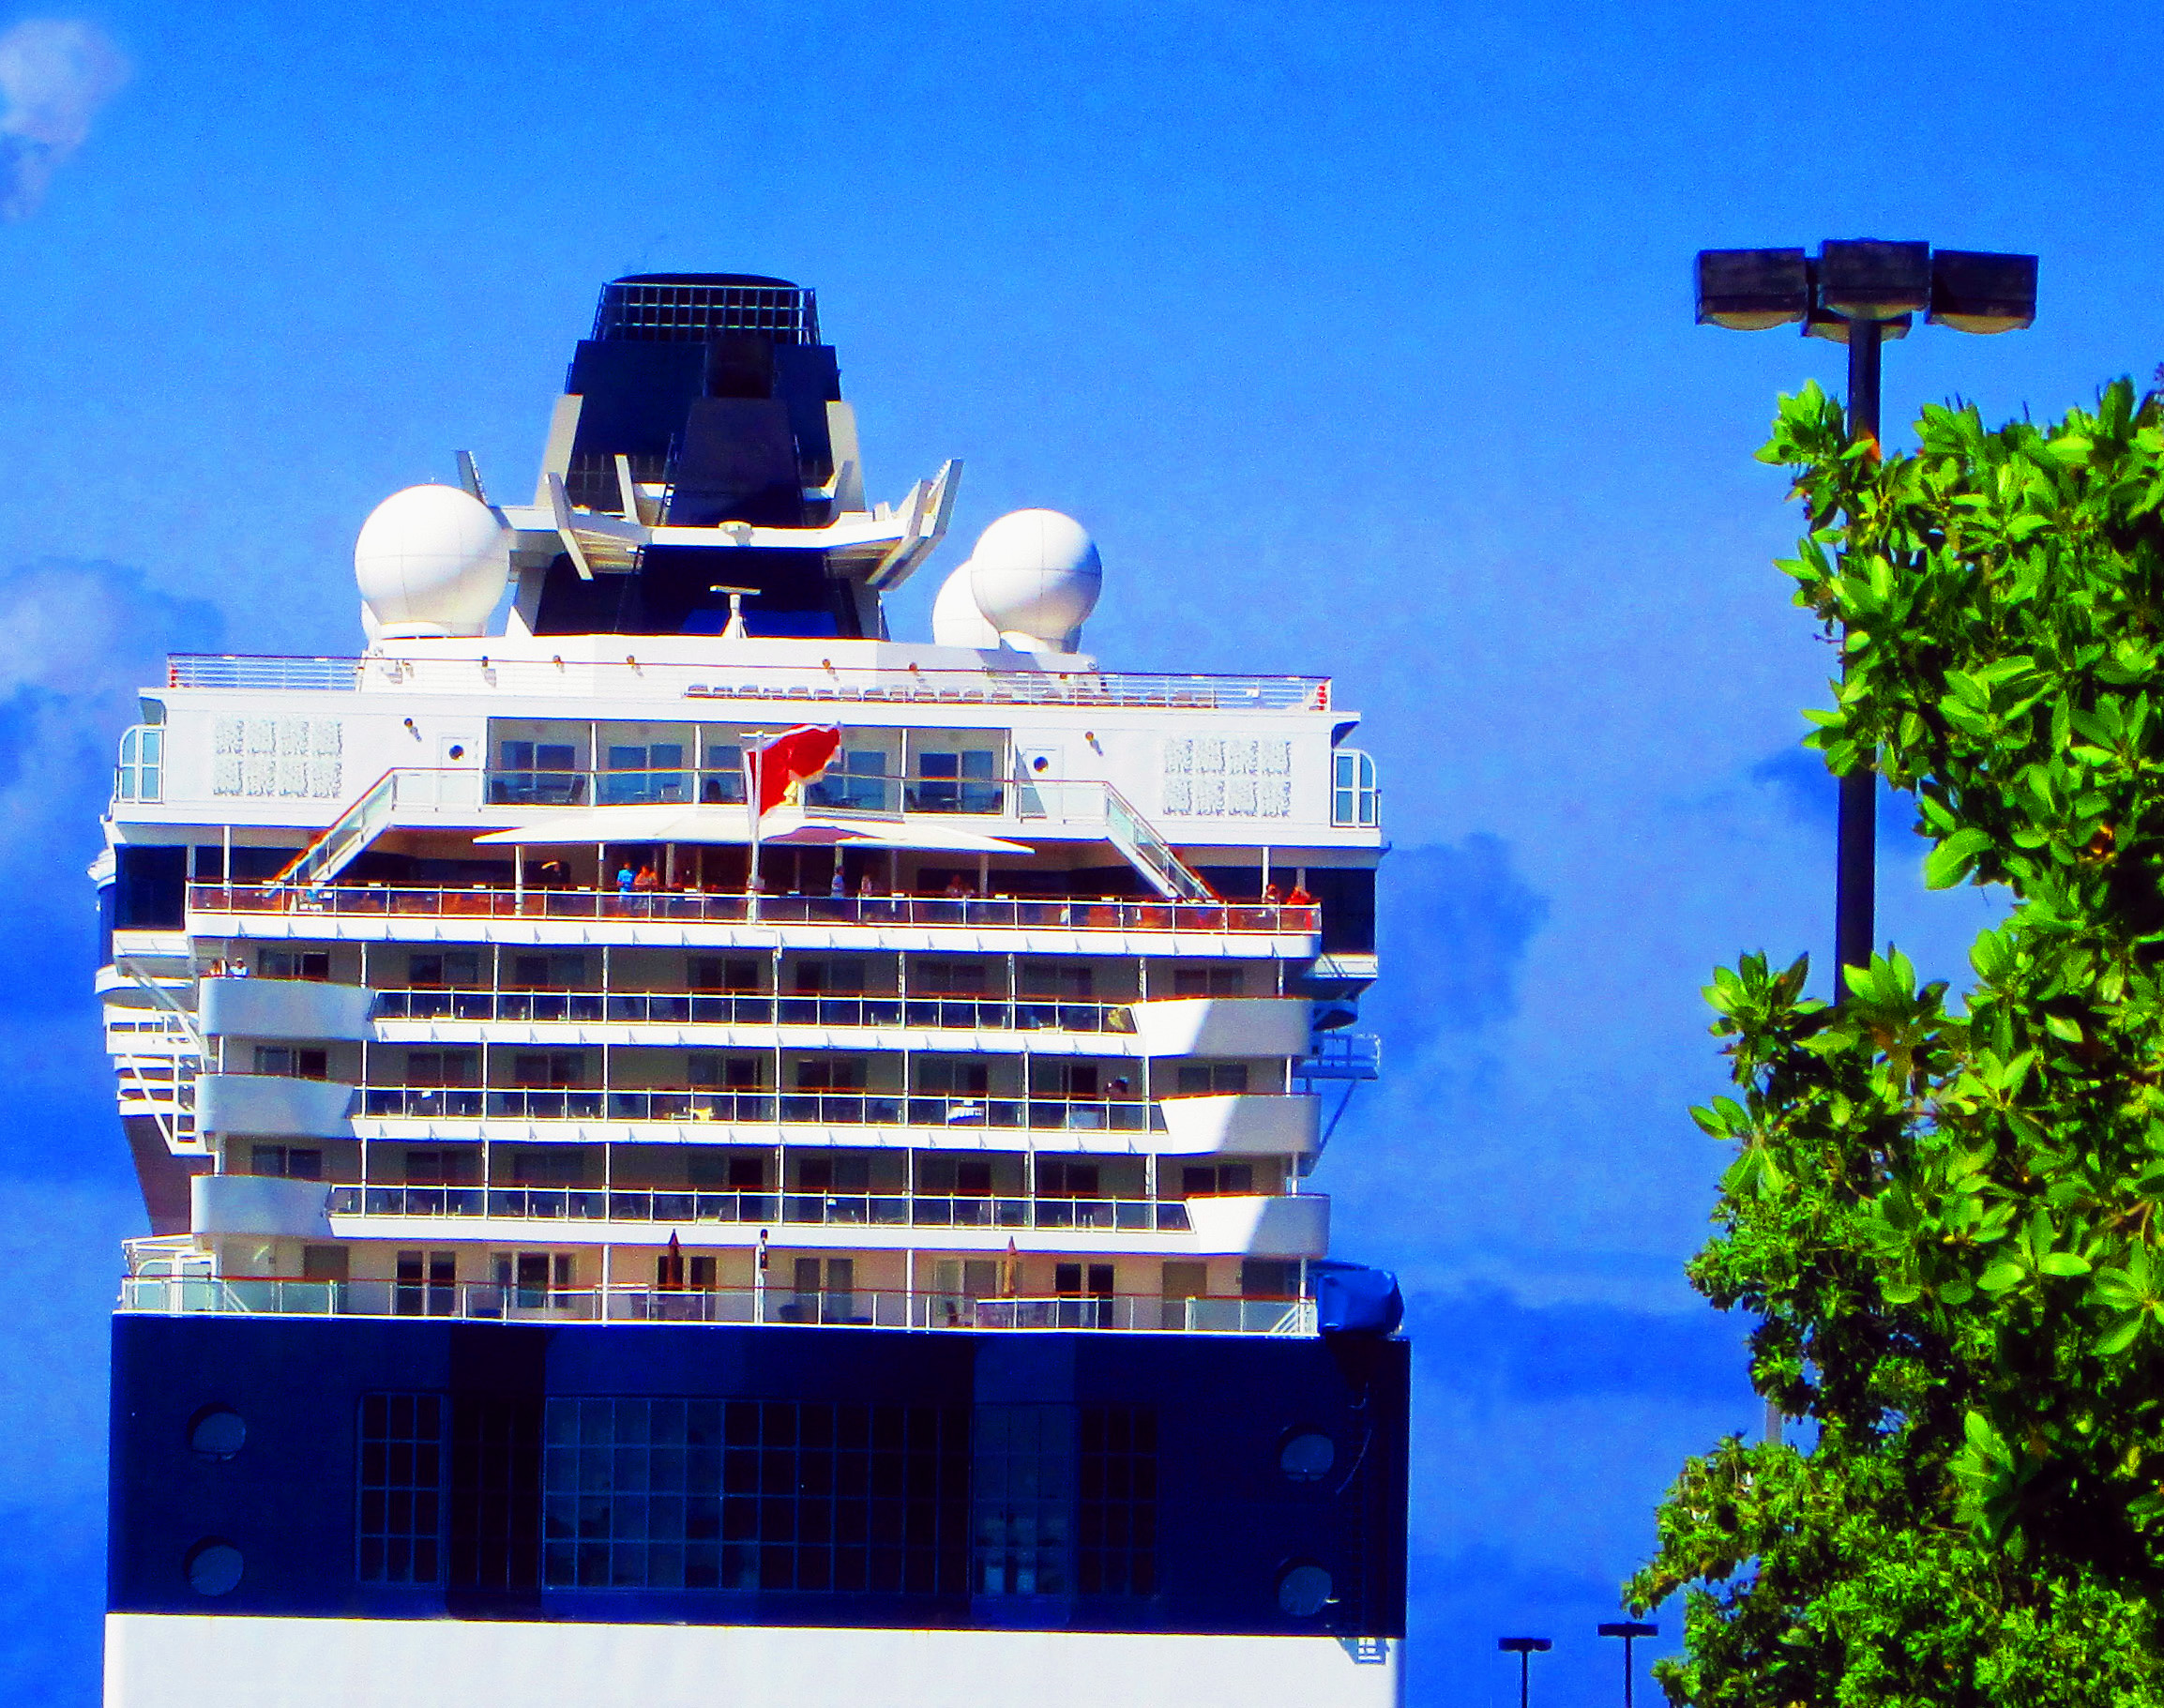 Rear Decks Of The Celebrity Summit Cruise Ship